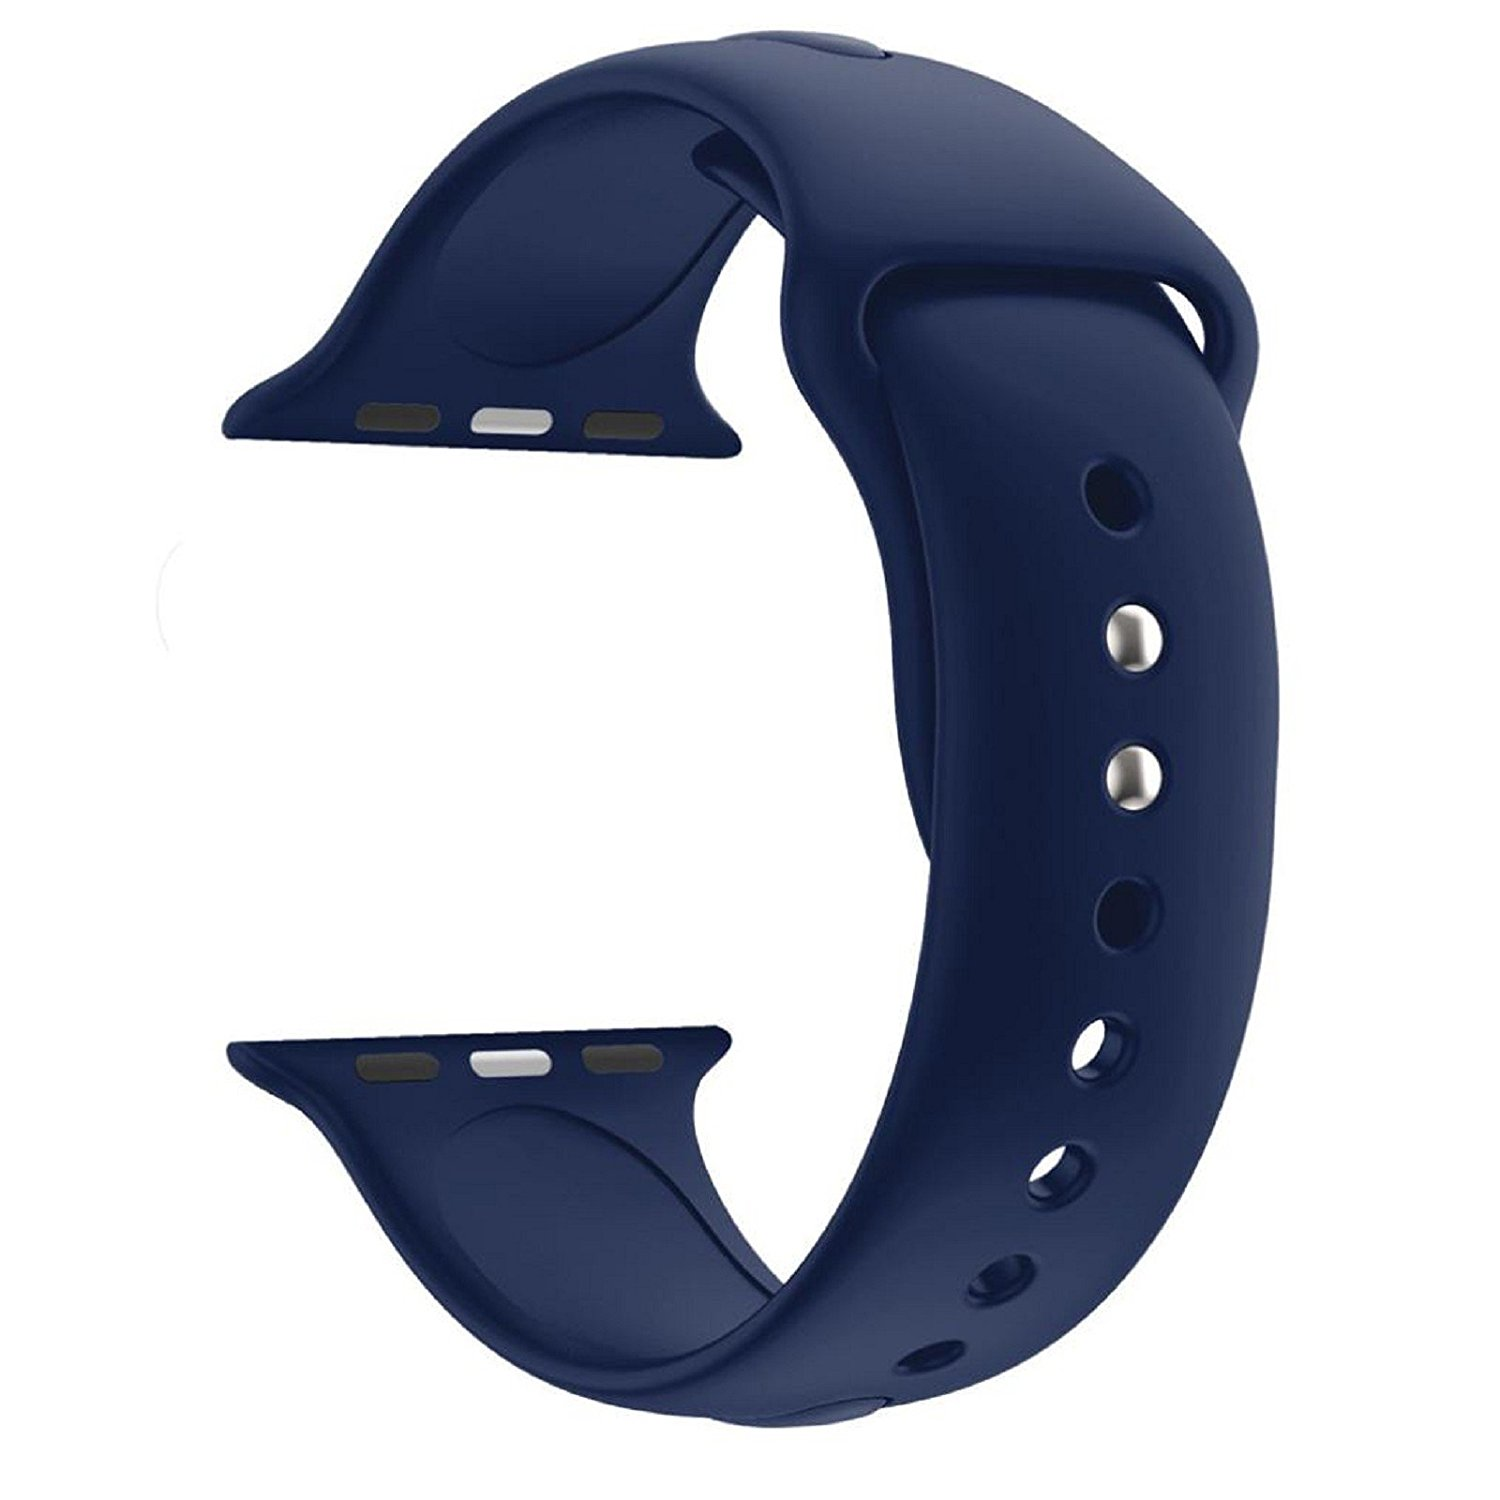 Owill Fashion Sports Soft Silicone Replacement Sports Band Watch Strap For Apple Watch Series 3 42MM, Wrist Circumference: 140MM-185MM (Navy)